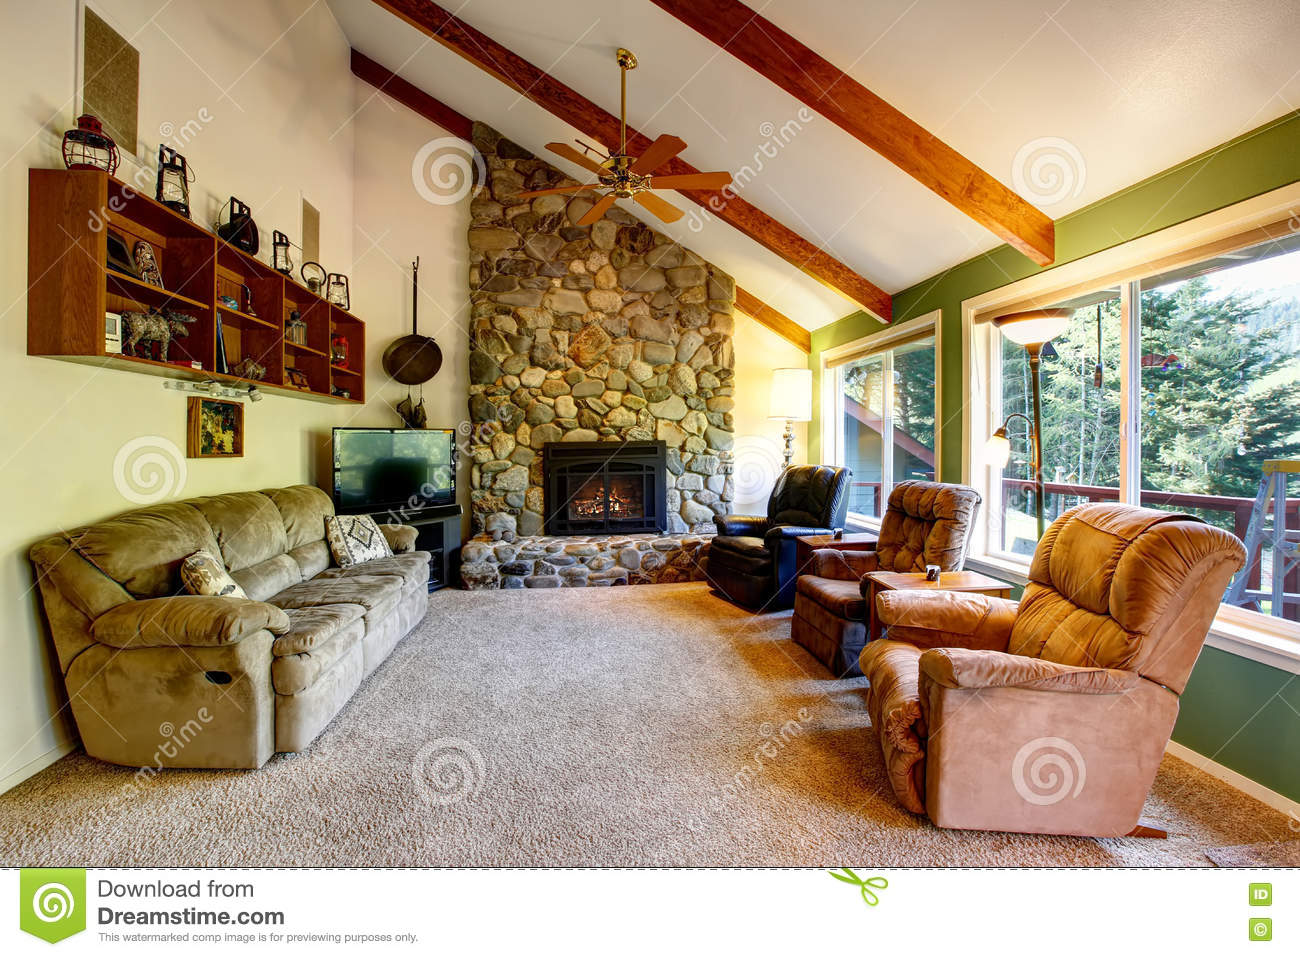 Grand int rieur de salon dans la maison de campagne am ricaine image stock image 74405159 for Interieur maison americaine